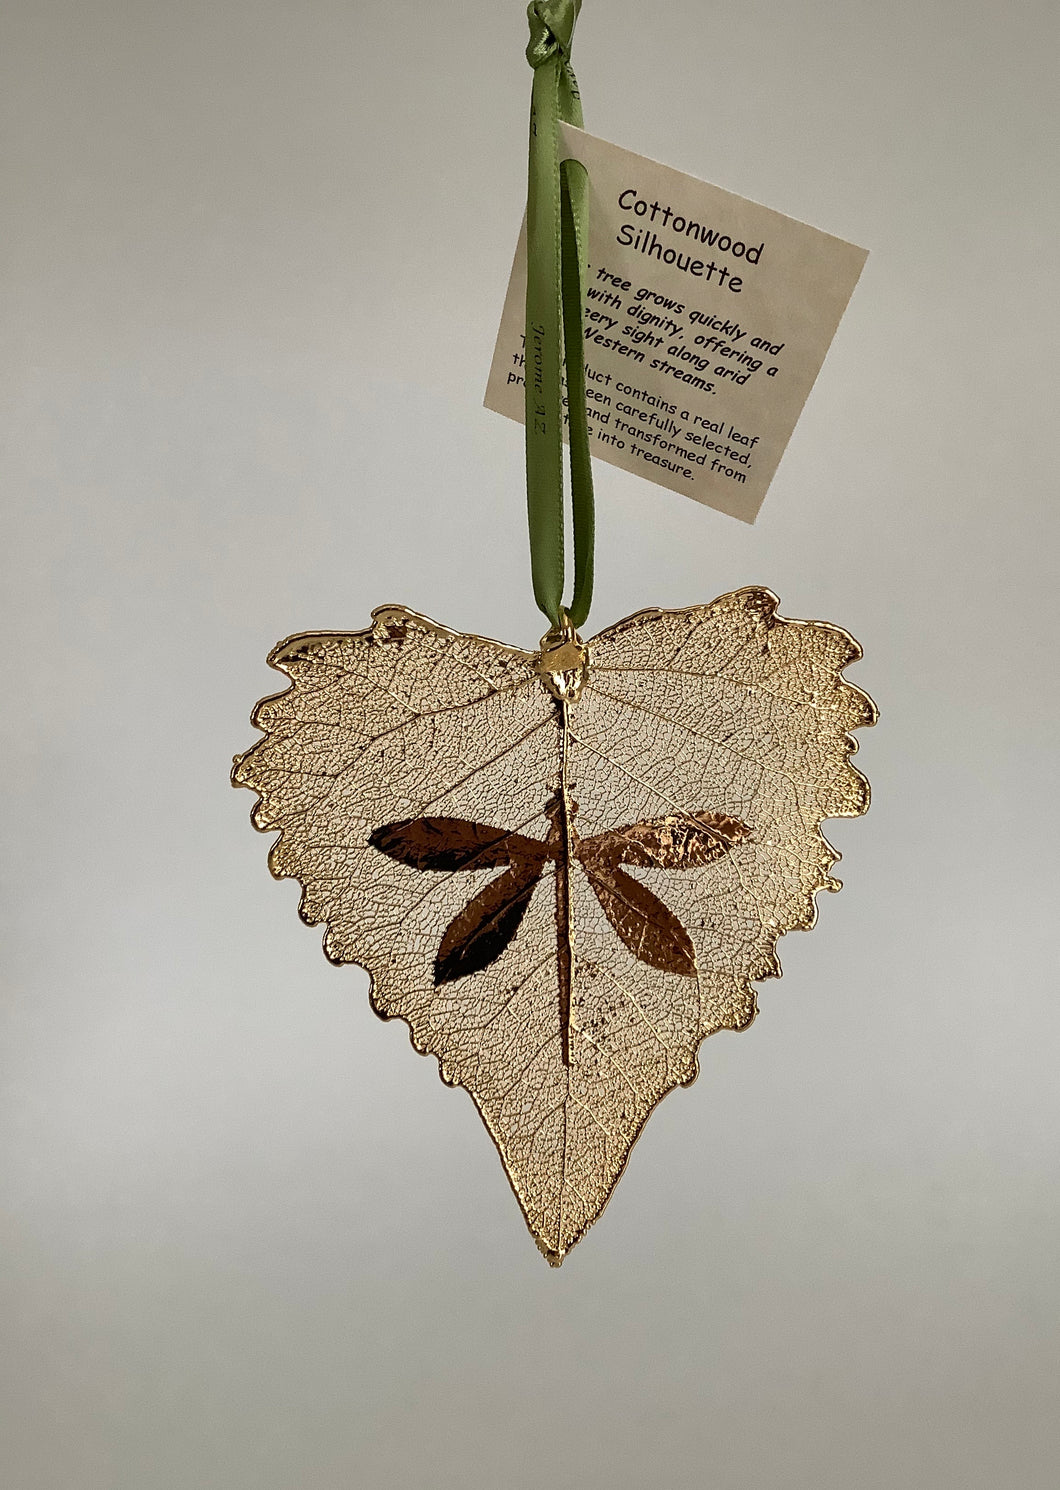 COTTONWOOD LEAF WITH DRAGONFLY SILHOUETTE - GOLD